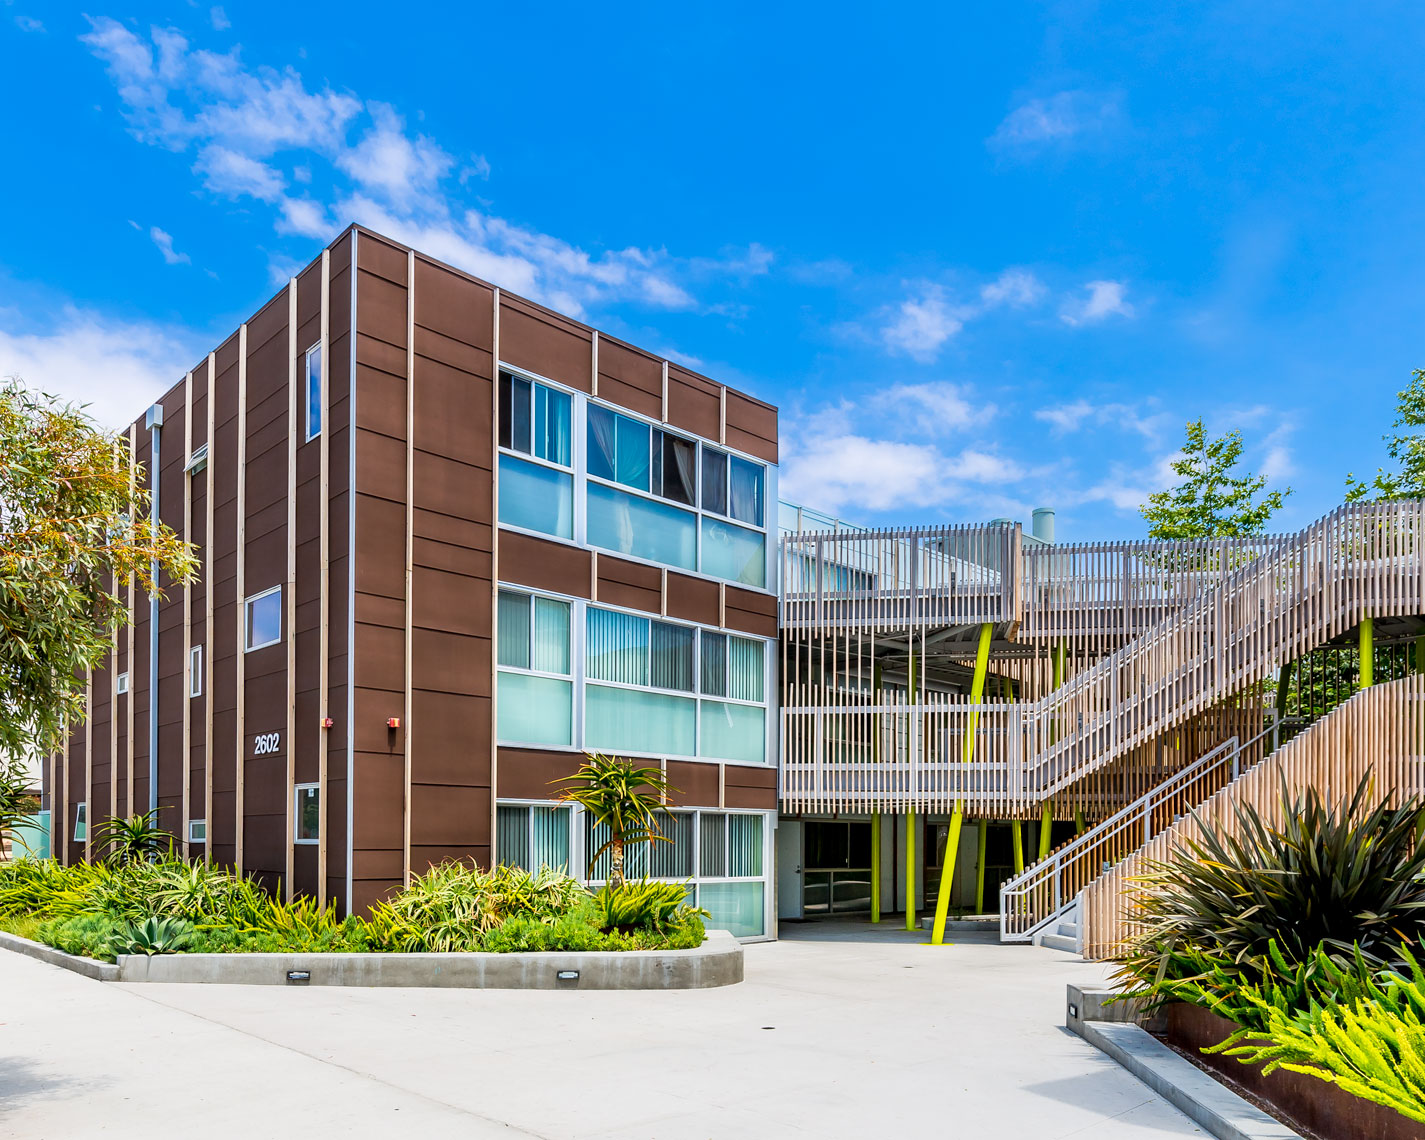 William_Short_Photography_Santa_Monica_Affordable_Housing_008